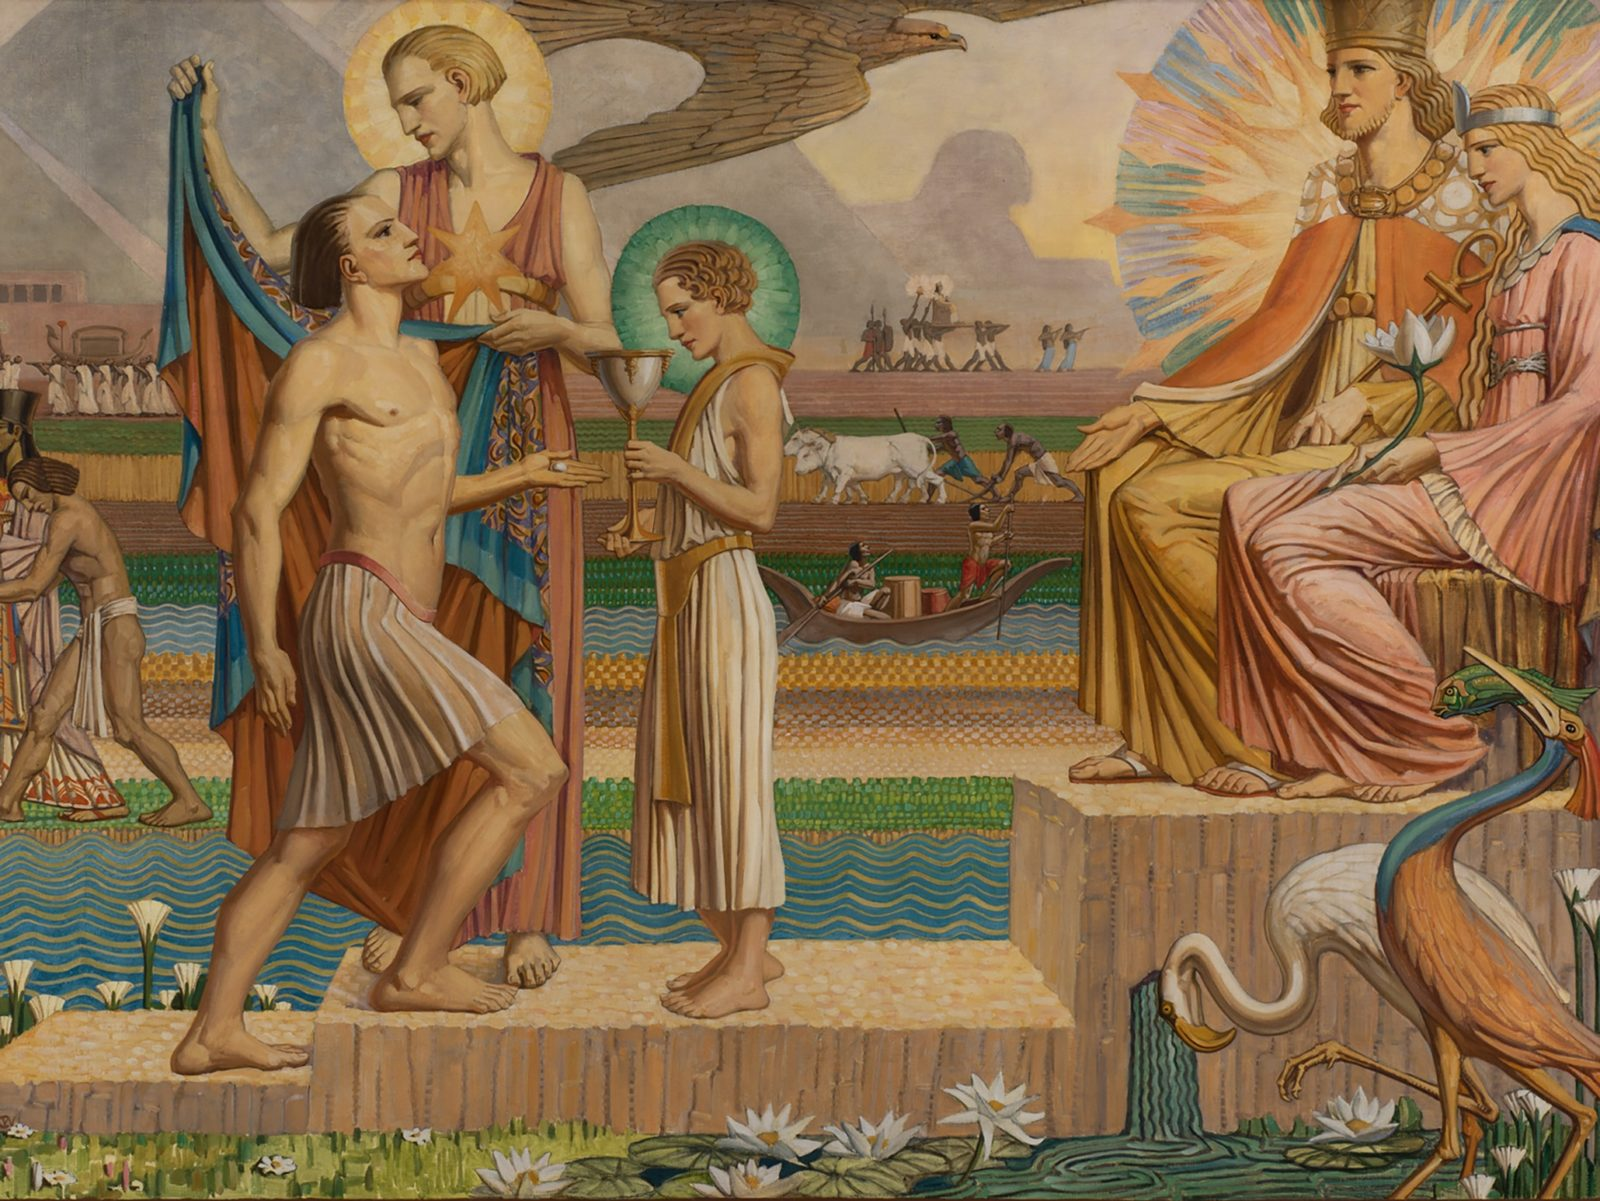 Christian Waller. The robe of glory 1937 Oil on canvas